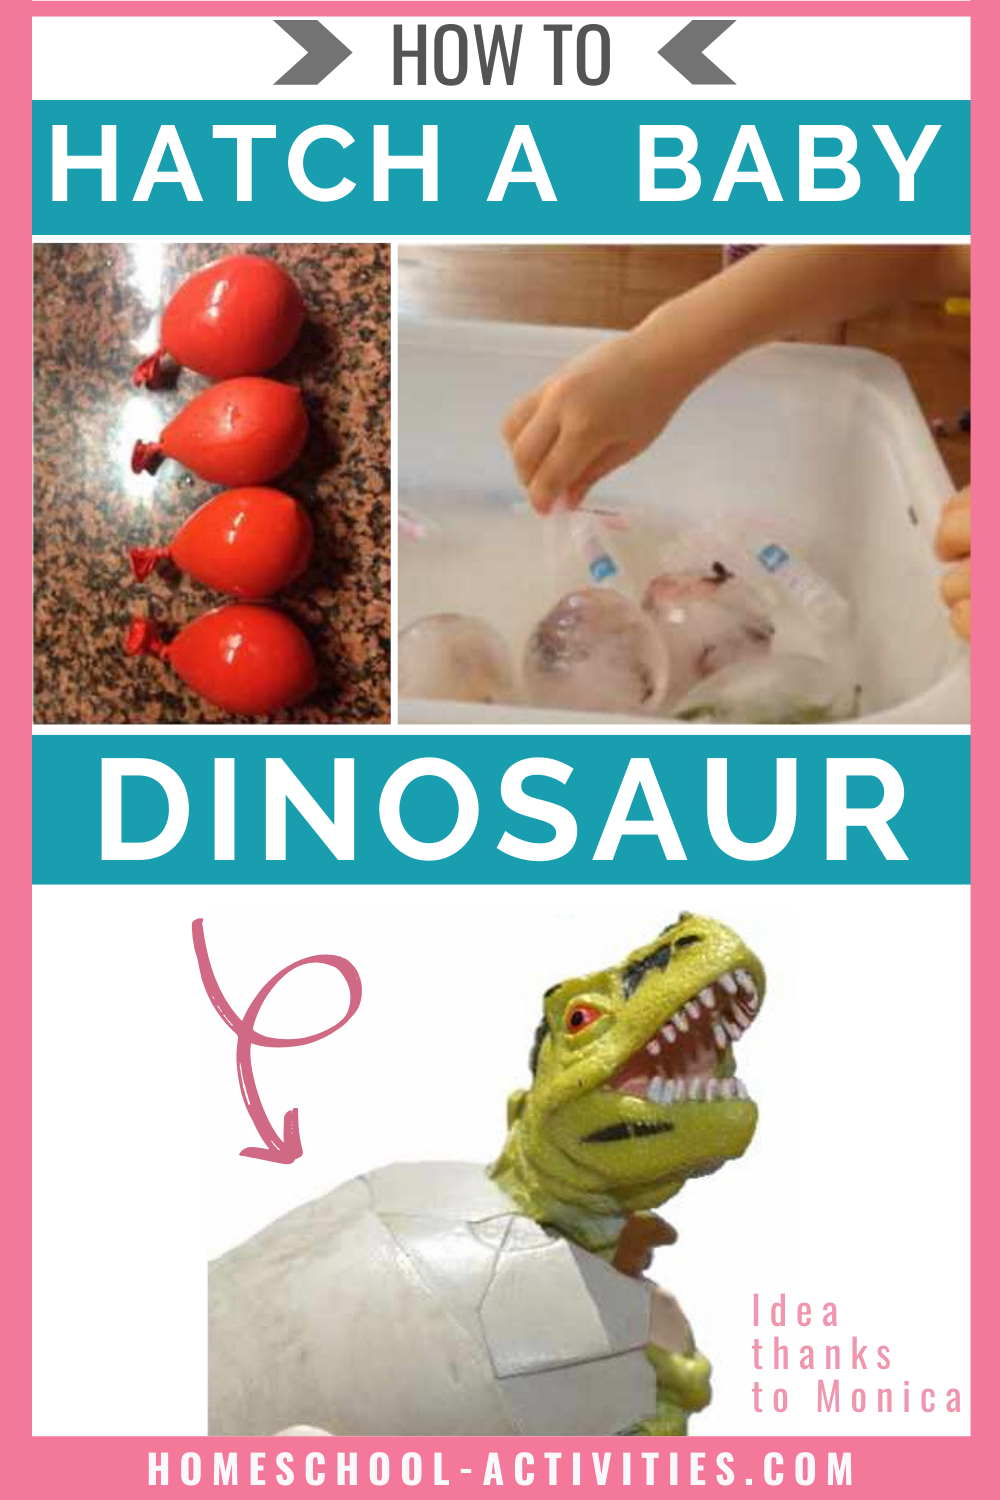 How to hatch a baby dinosaur